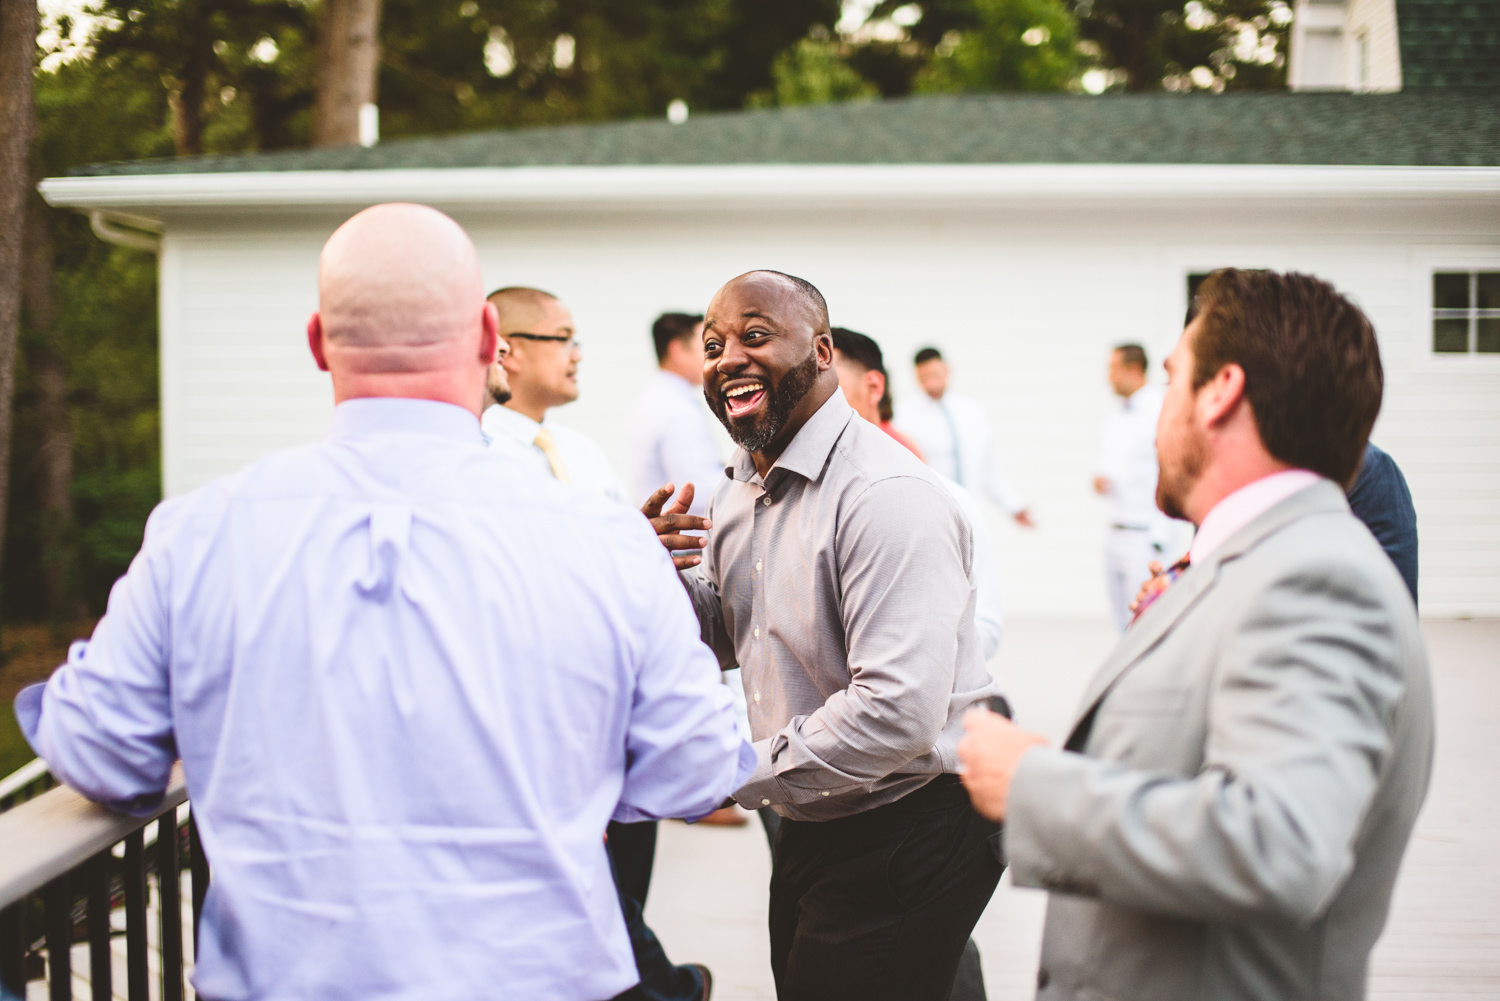 043 wedding guests laughing together.jpg